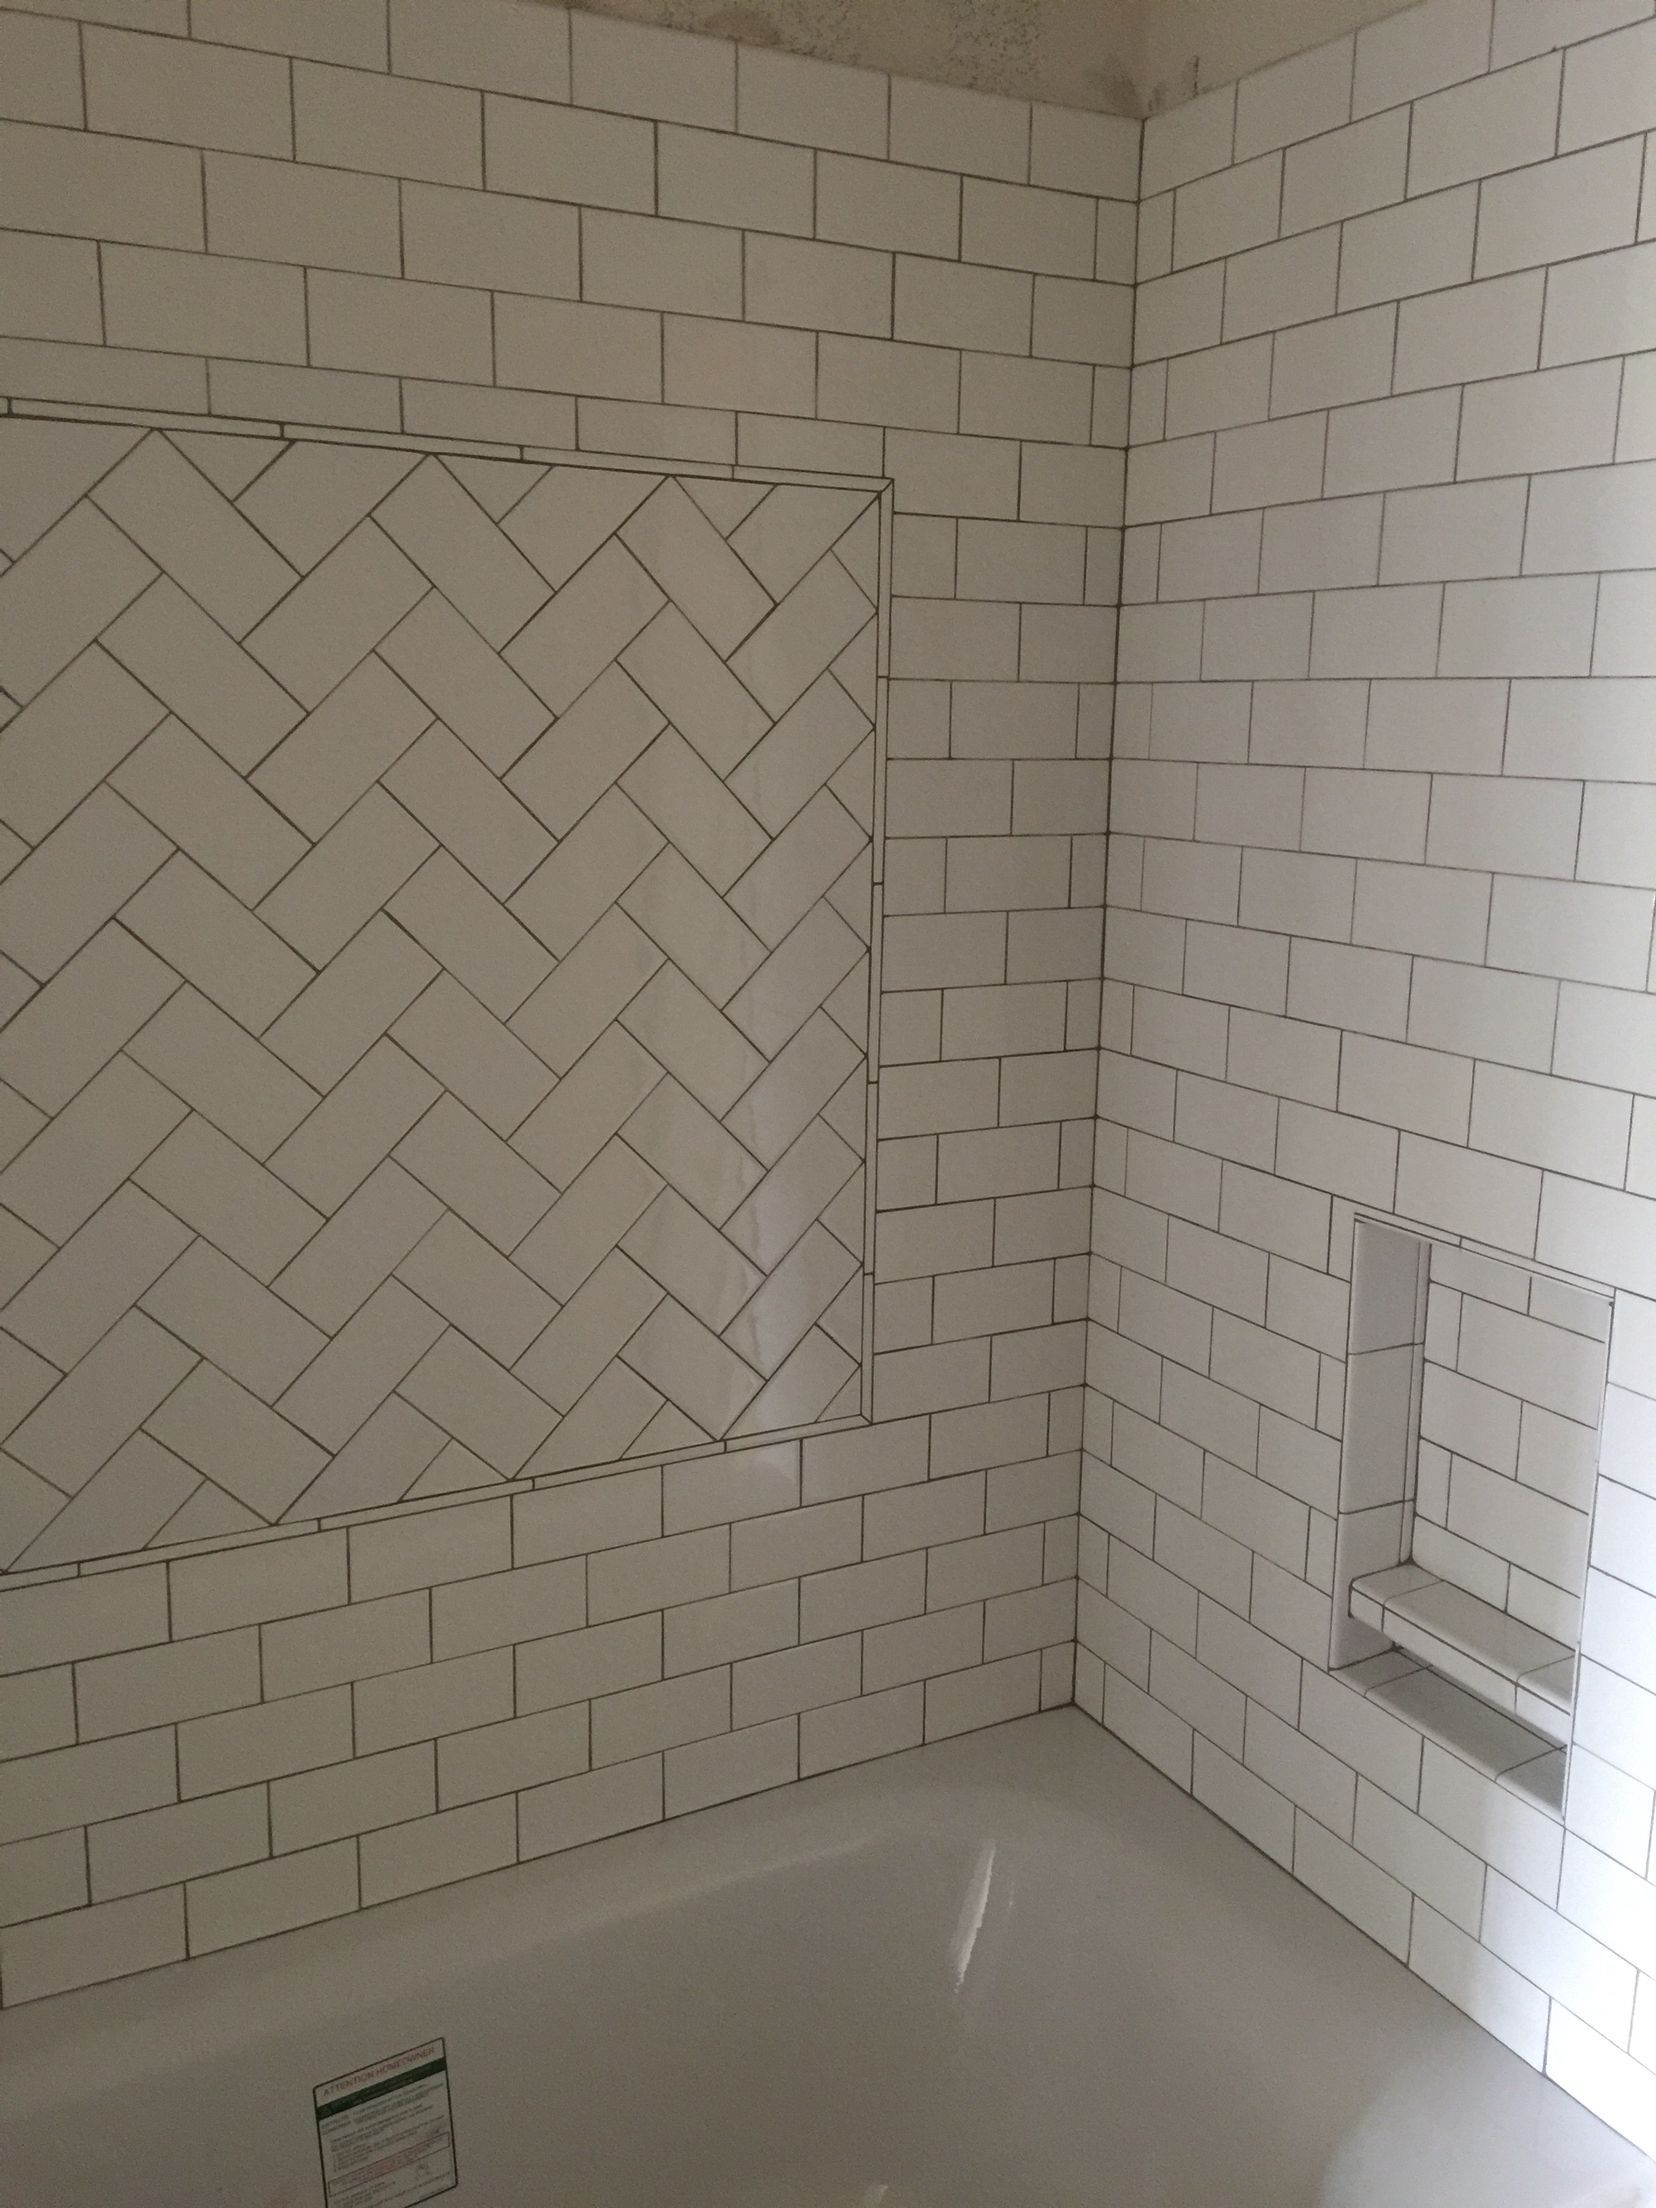 Grouting Bathroom Wall Tiles Check More At Http Www Arch20 Club